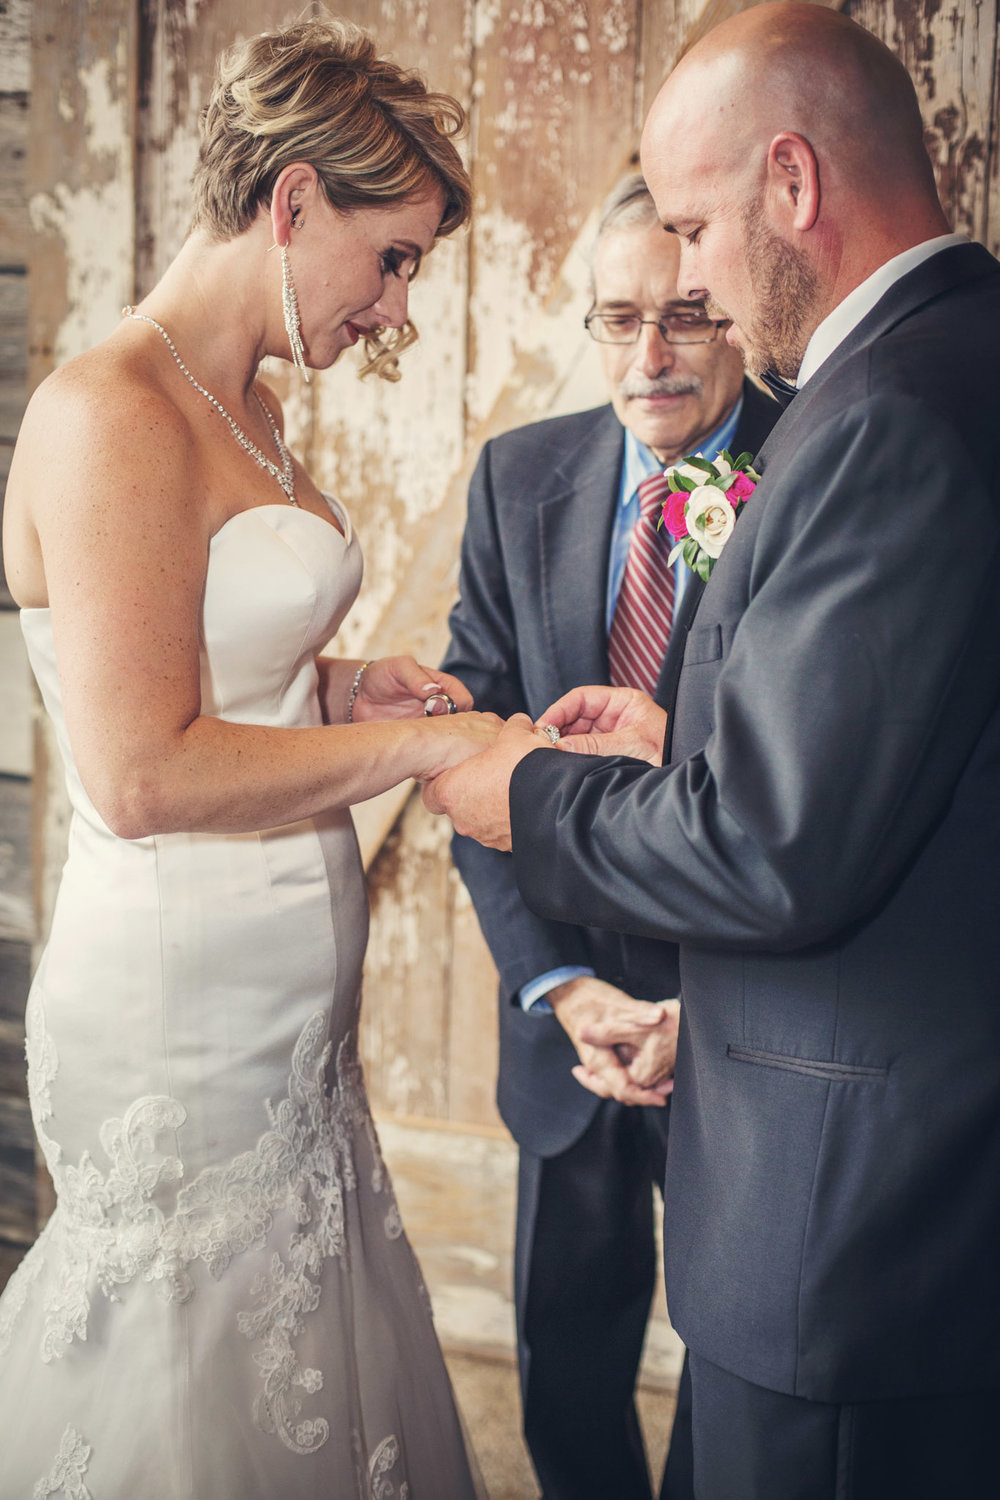 Kansas+City-Small+Wedding-Elope_Intimate_Ceremony_Melanie+David-6.jpg